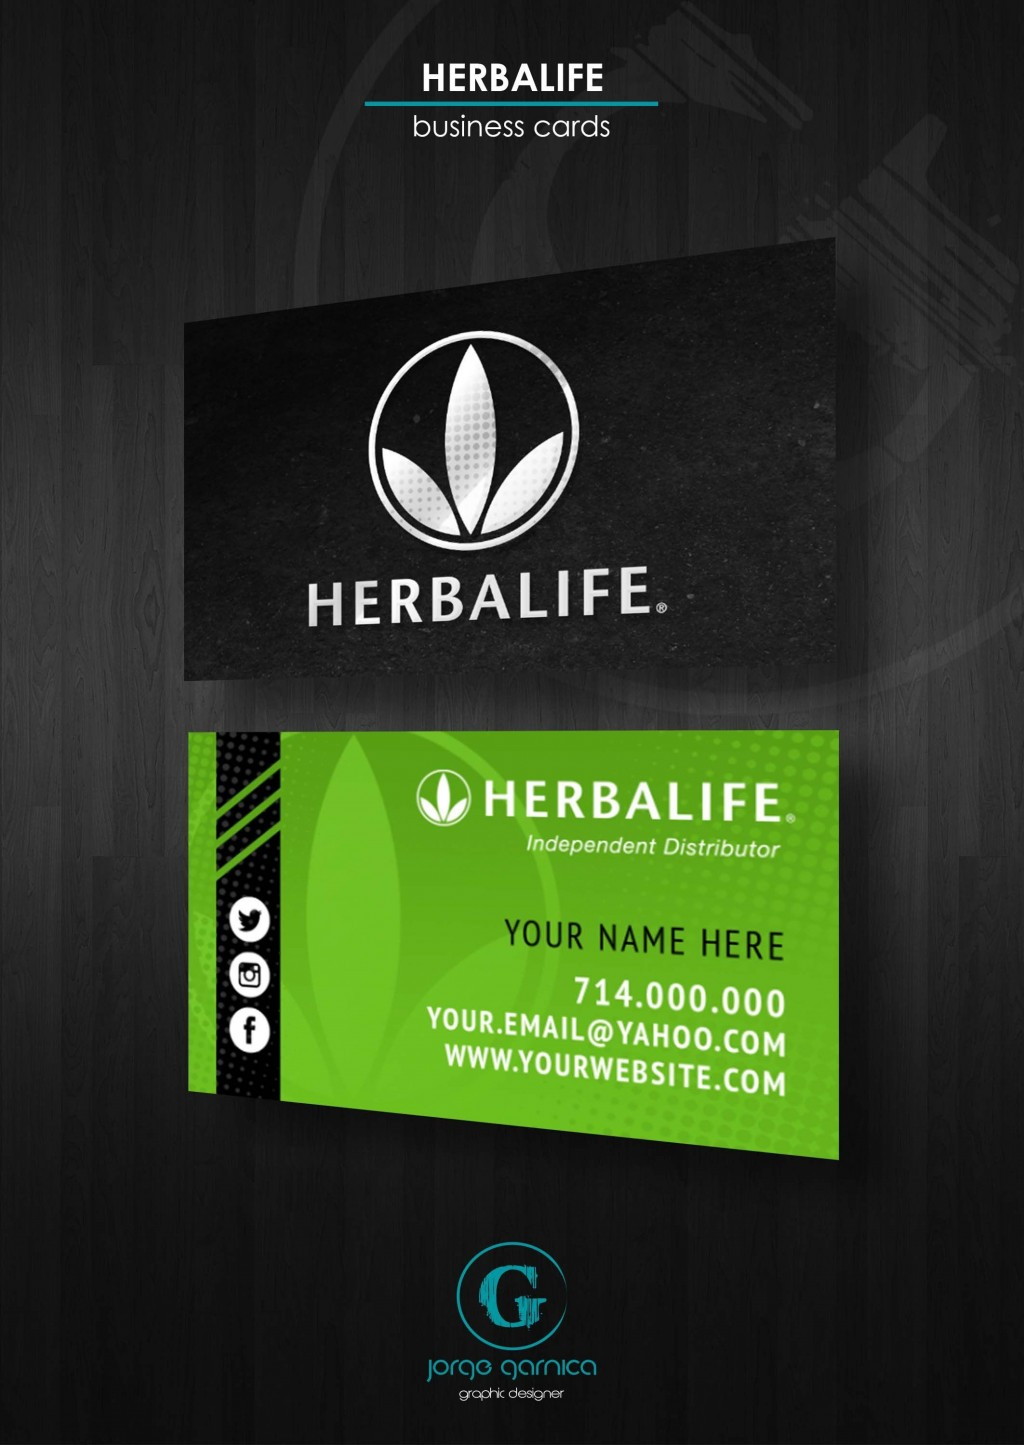 000 Amazing Herbalife Busines Card Template Highest Clarity  Download FreeLarge